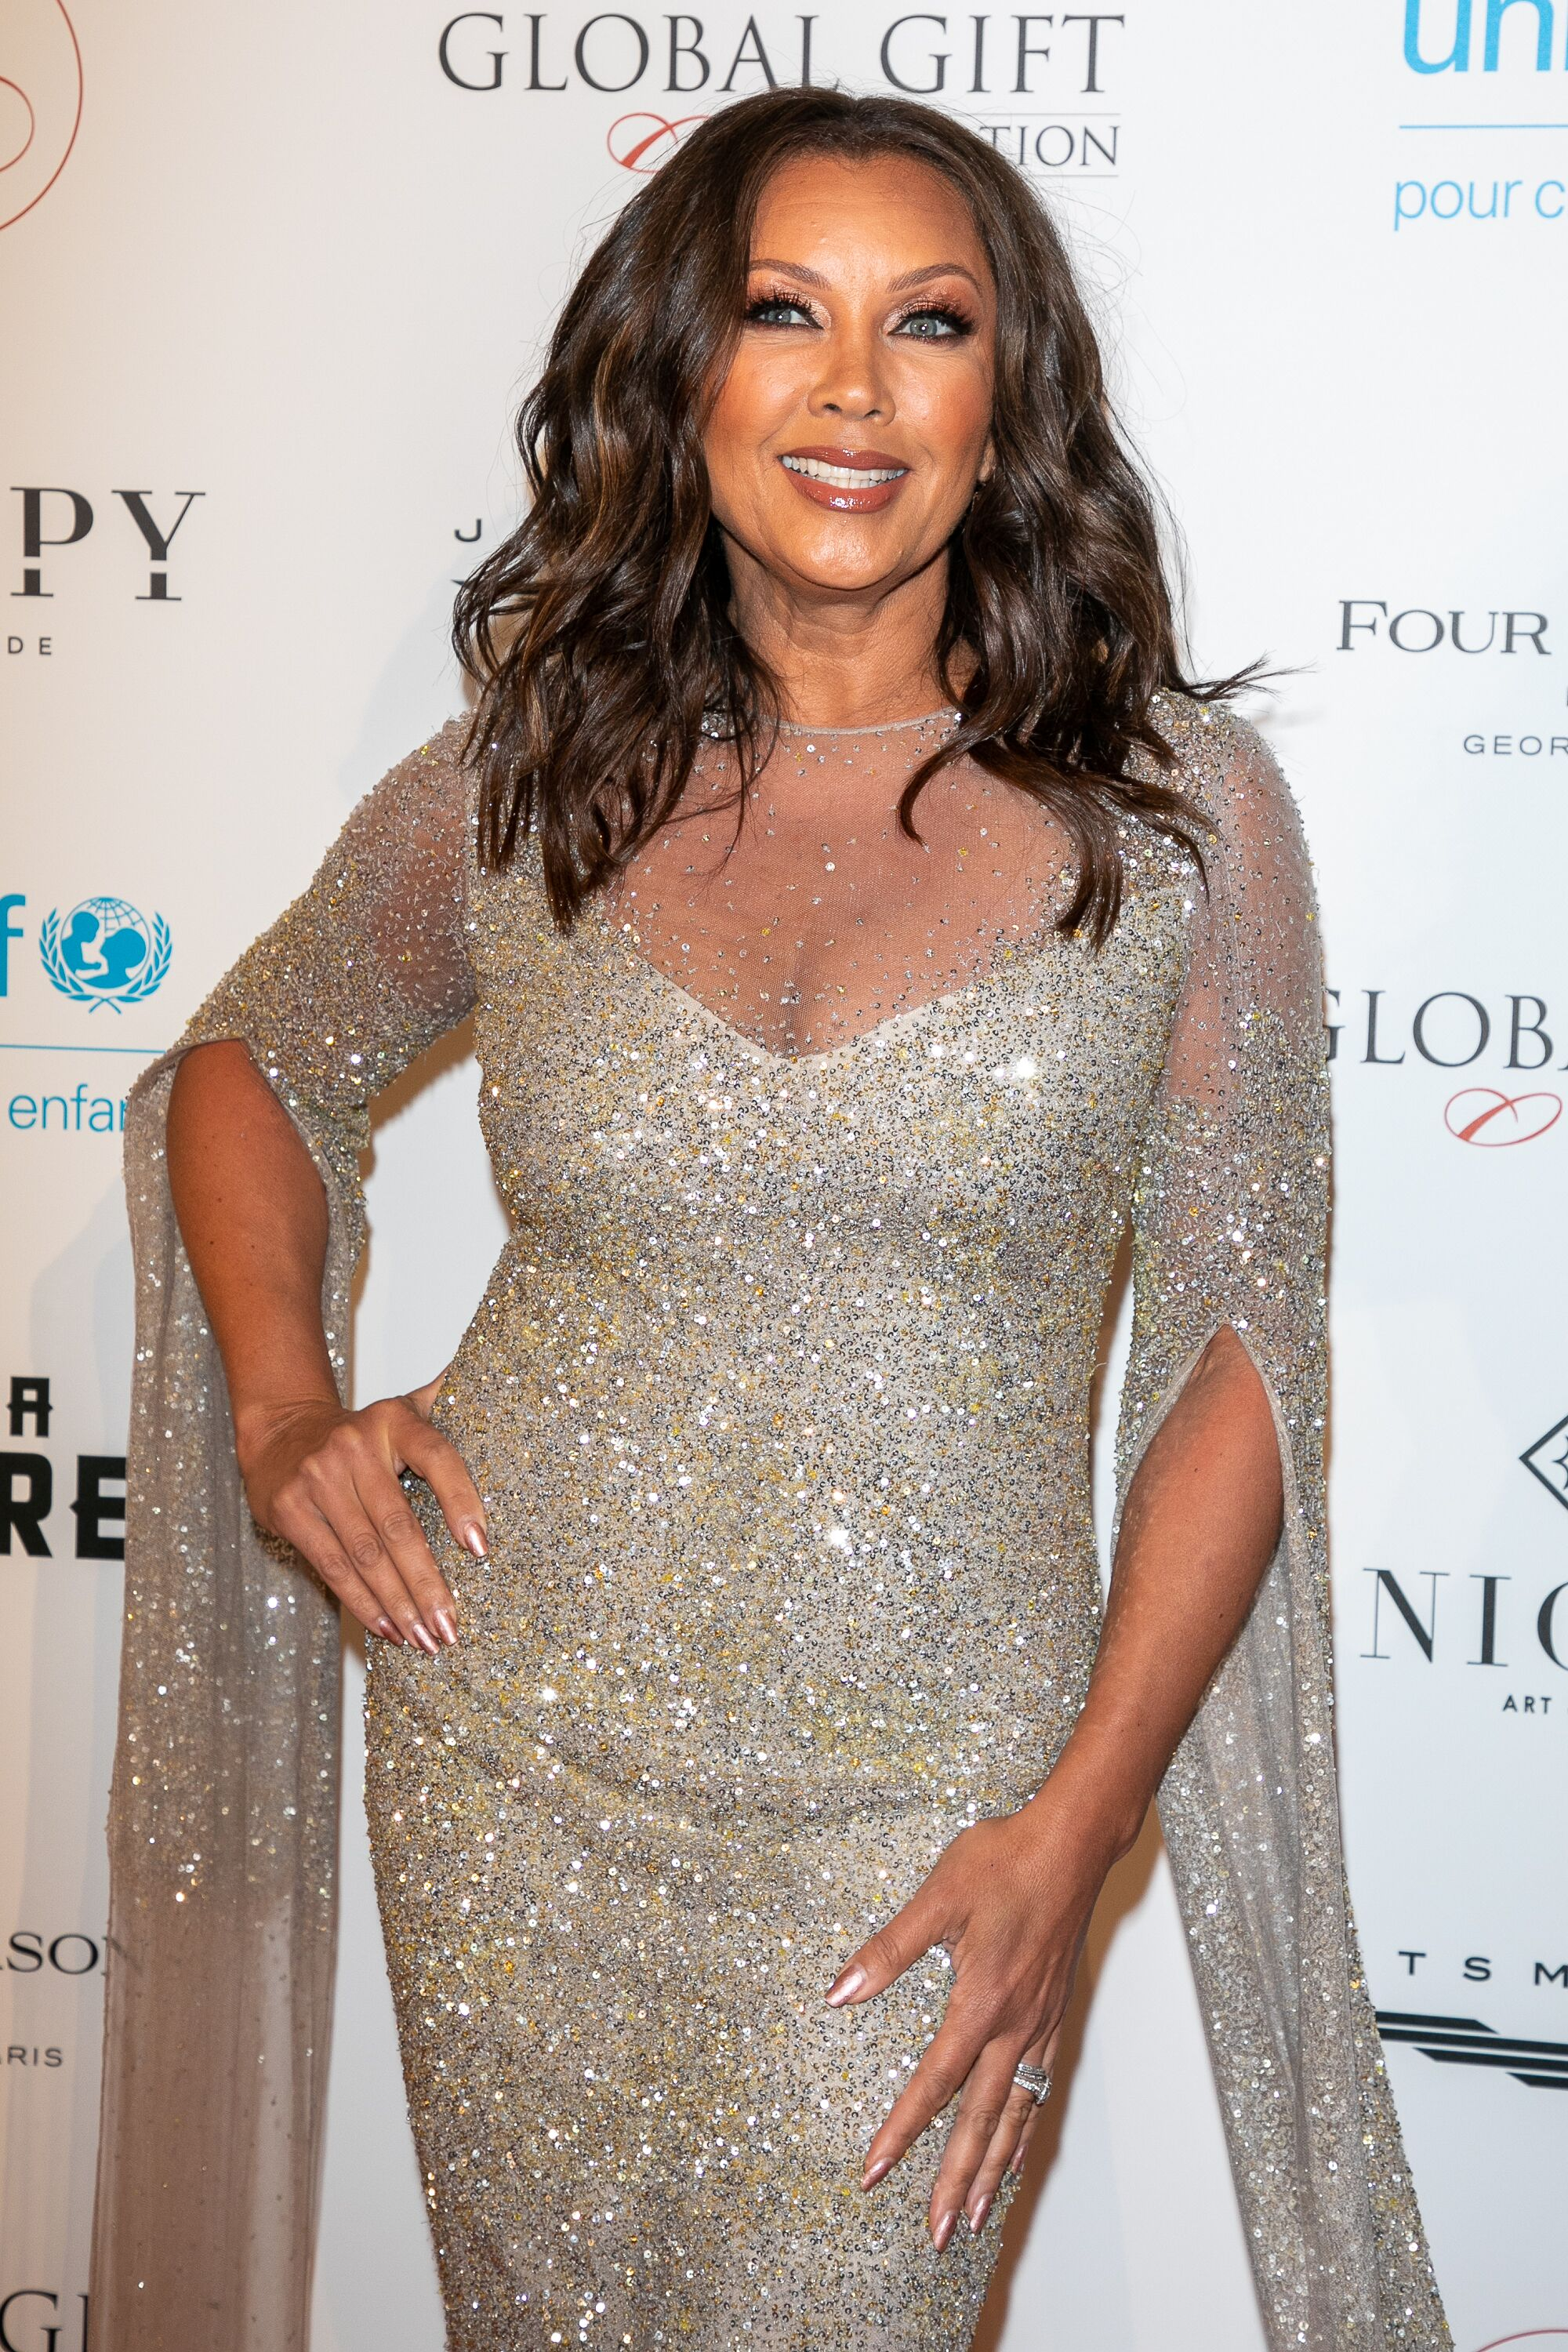 Vanessa Williams attends the Global Gift Gala. | Source: Getty Images